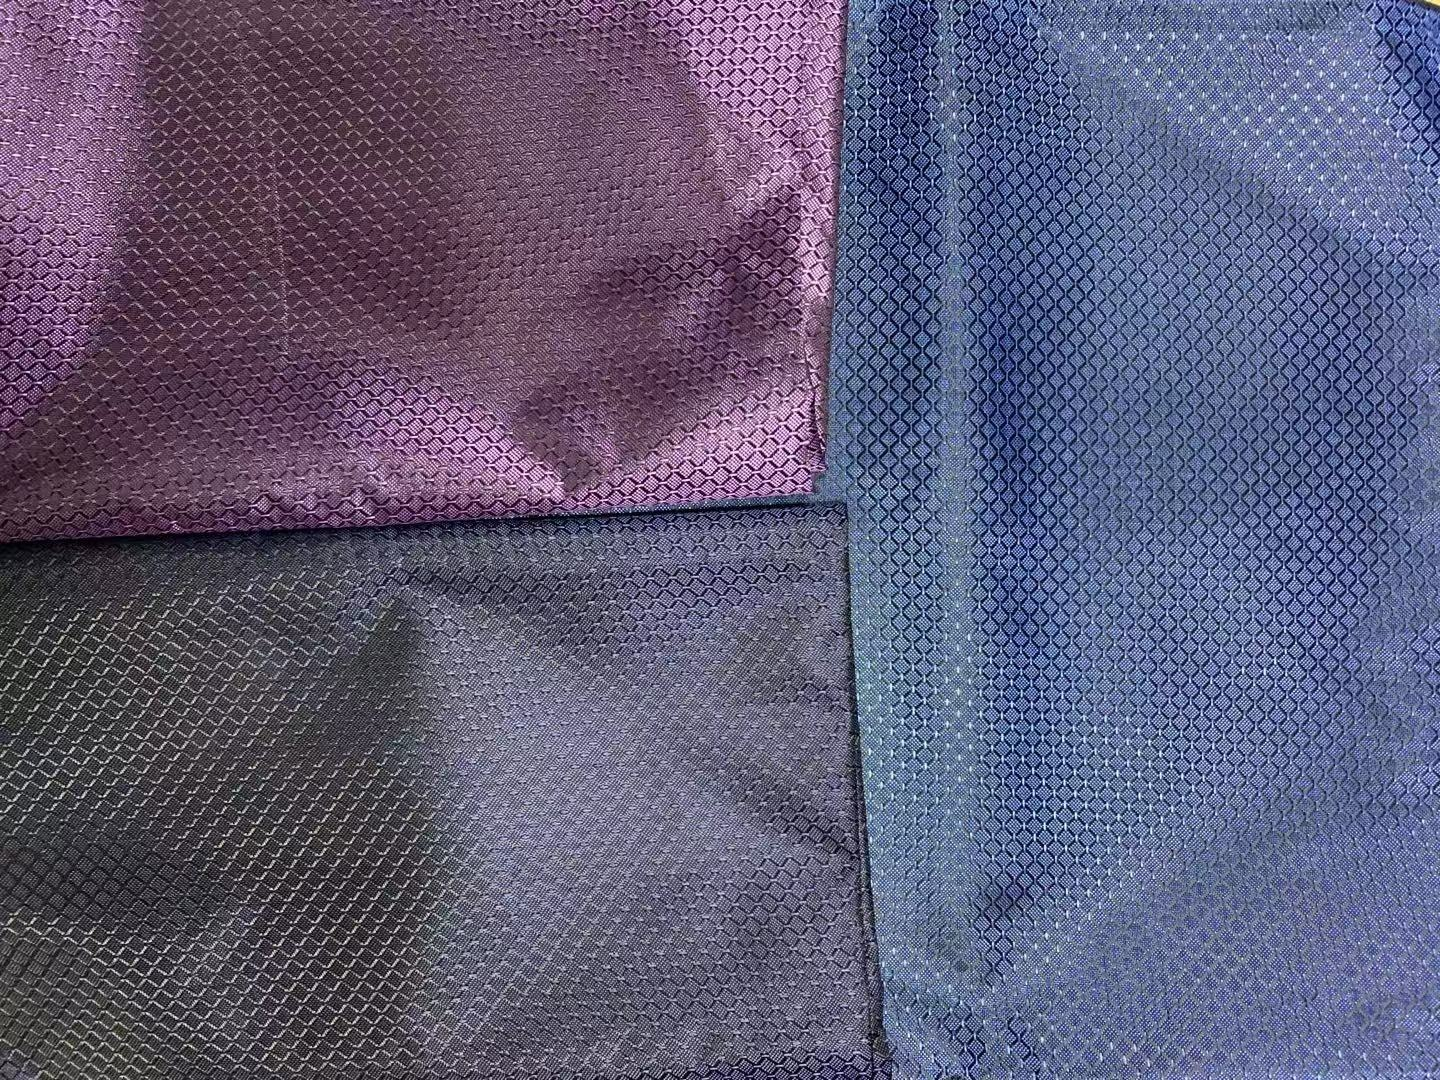 100% Polyester Weft Black Yarn Diamond Checkered PVC Coating Upholstery Woven Luggage Water Resistant Waterproof Wind Proof Pink